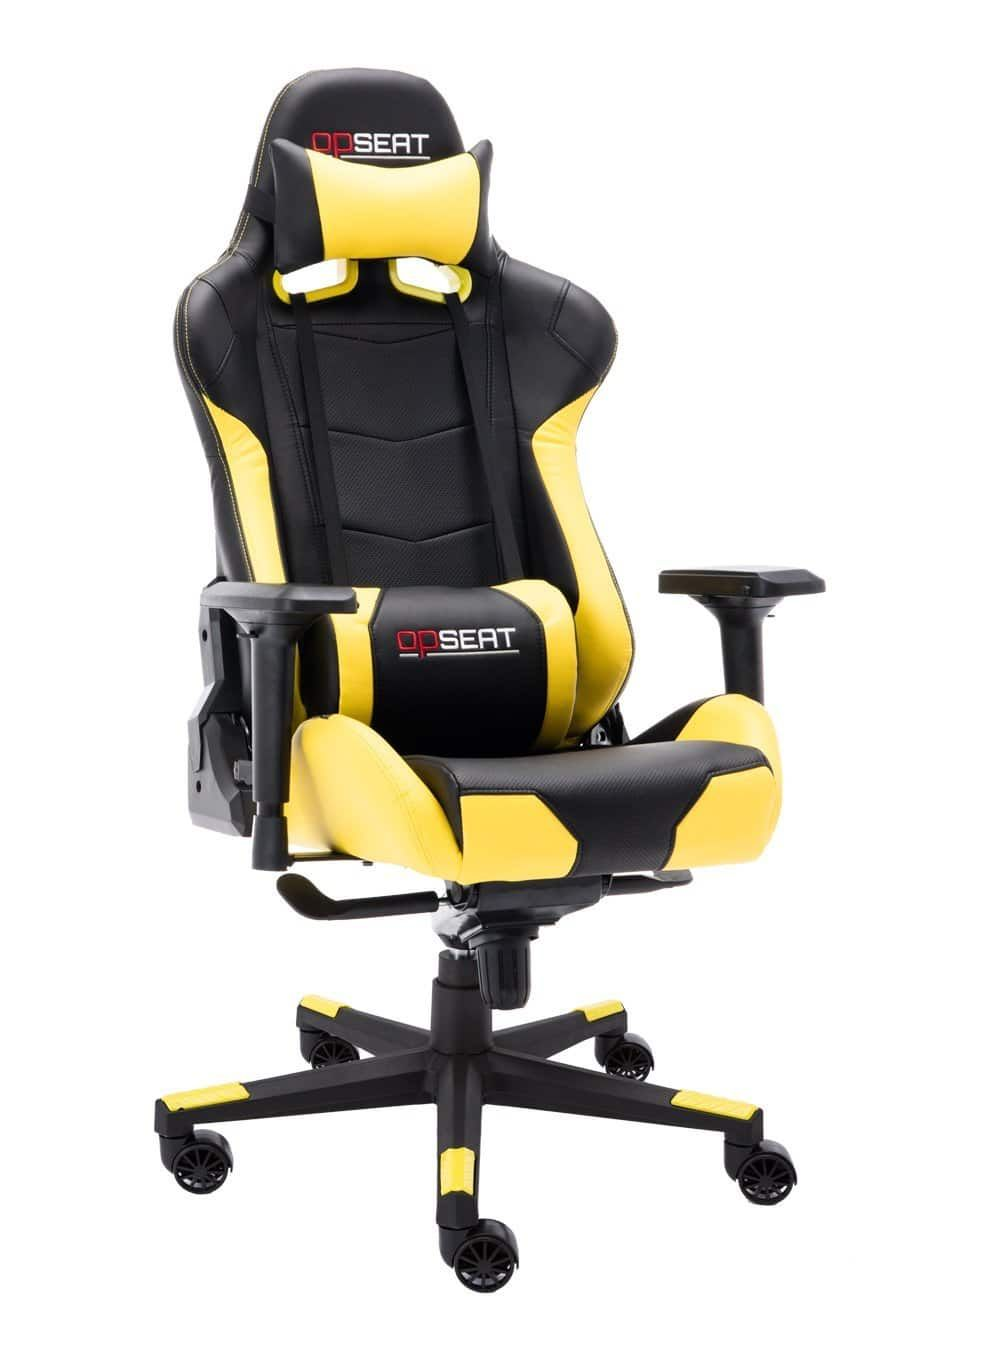 Top 8 Best PC Gaming Chairs in 8 - HQReview  Pc gaming chair